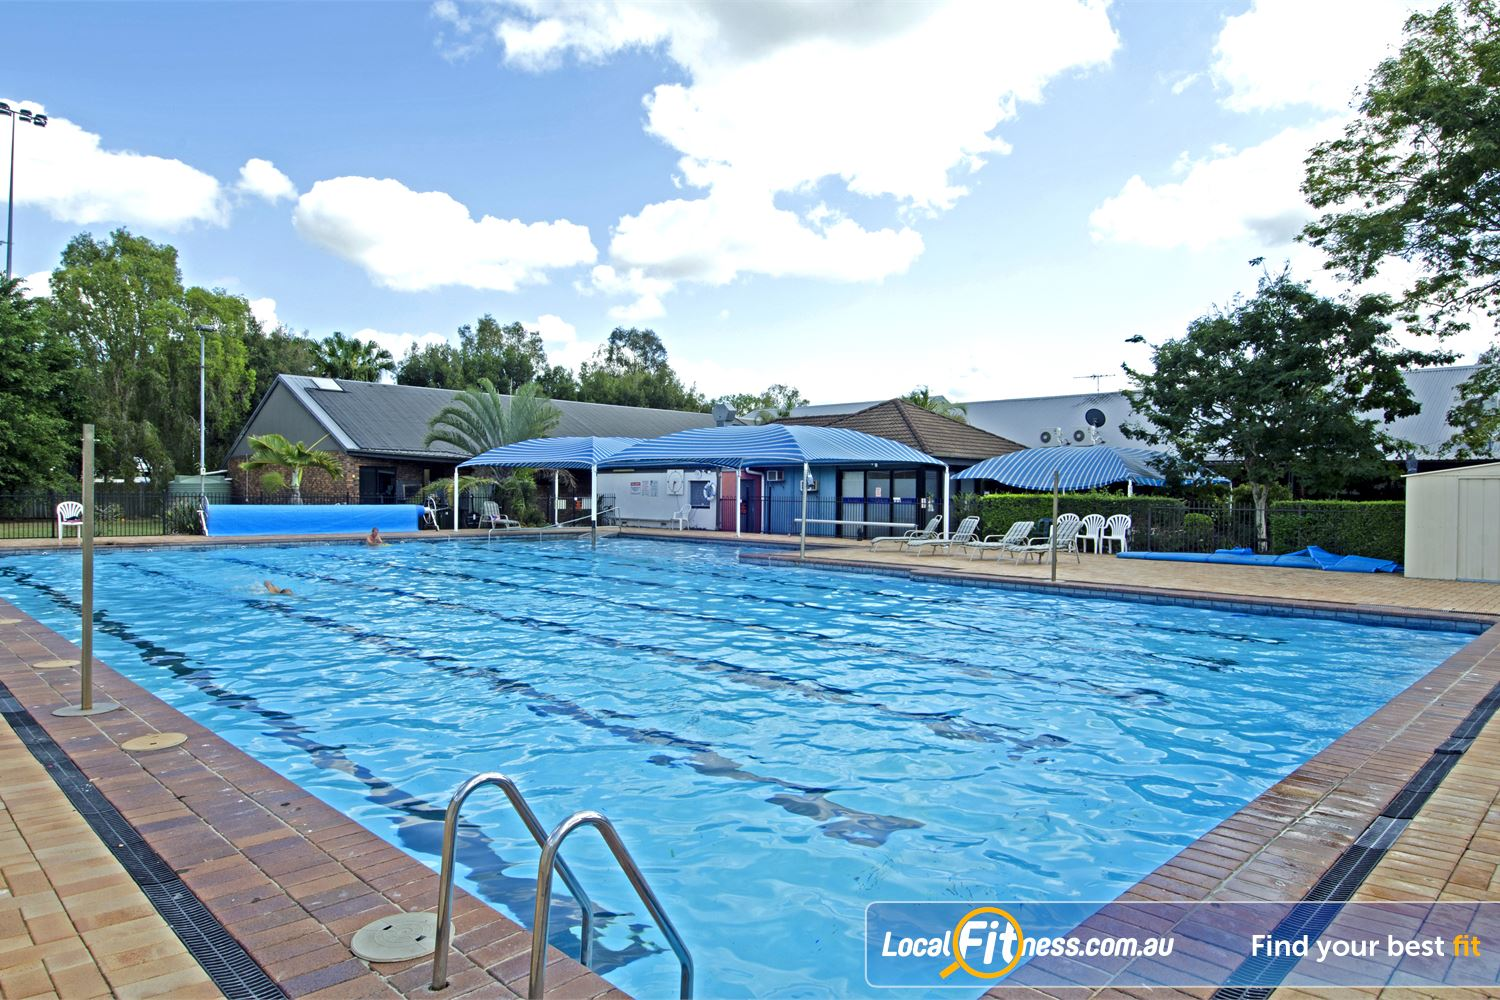 Goodlife Health Clubs Near Zillmere Our Carseldine outdoor swimming pool.